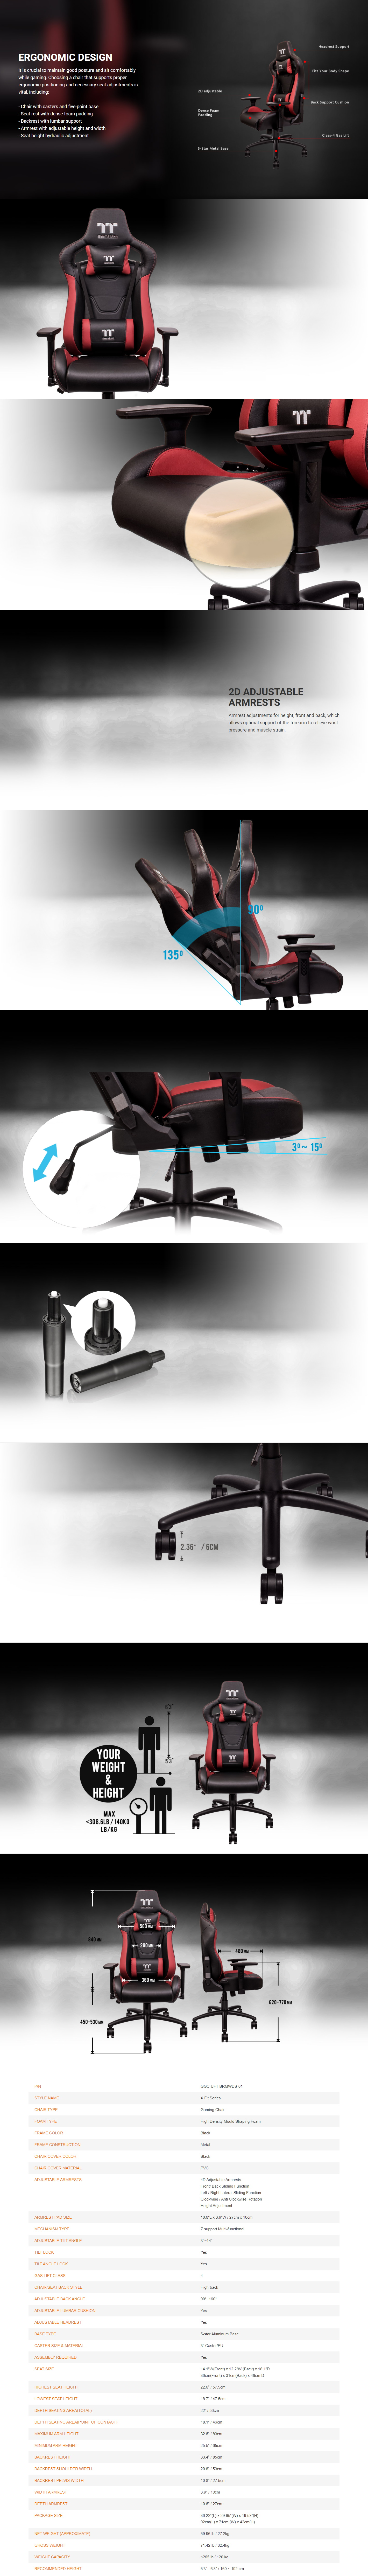 A large marketing image providing additional information about the product Thermaltake Gaming U Fit Gaming Chair - Black & Red - Additional alt info not provided